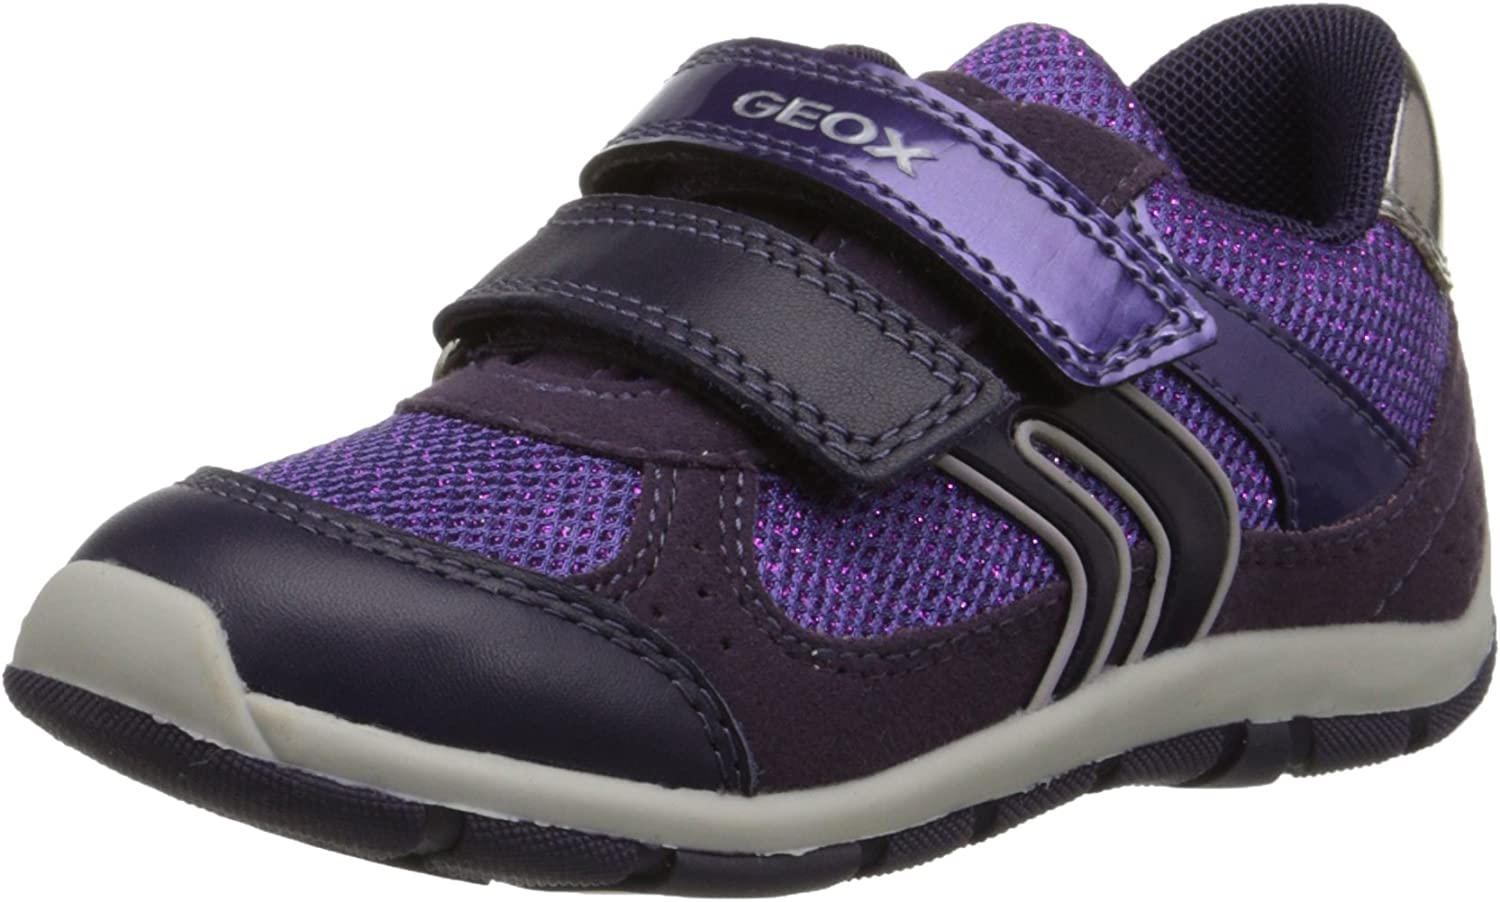 High material Geox Baby Shaax G Tampa Mall 7 Sneaker Toddler